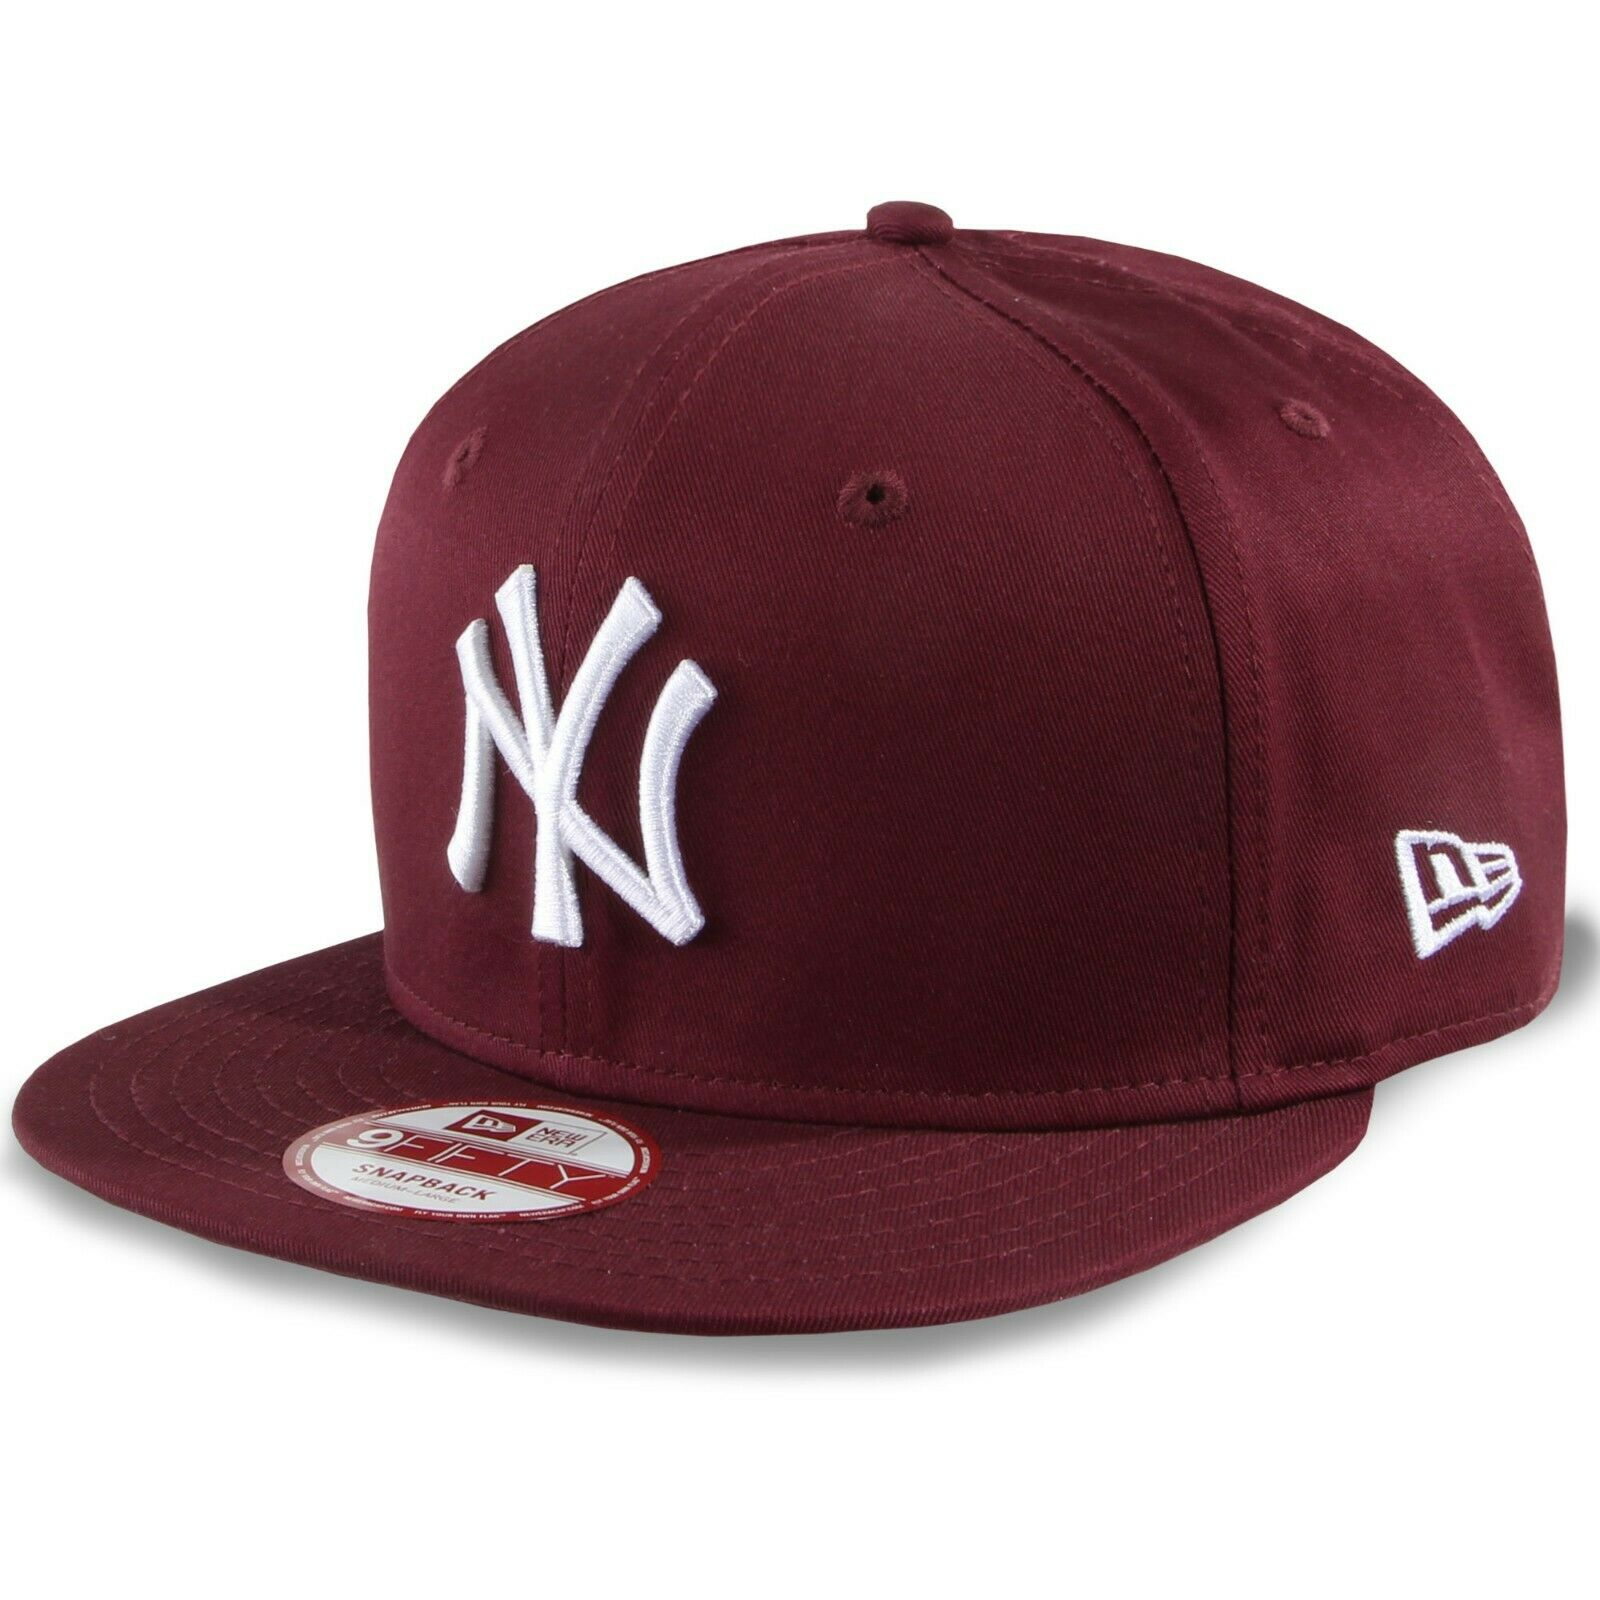 New York Yankees #K6